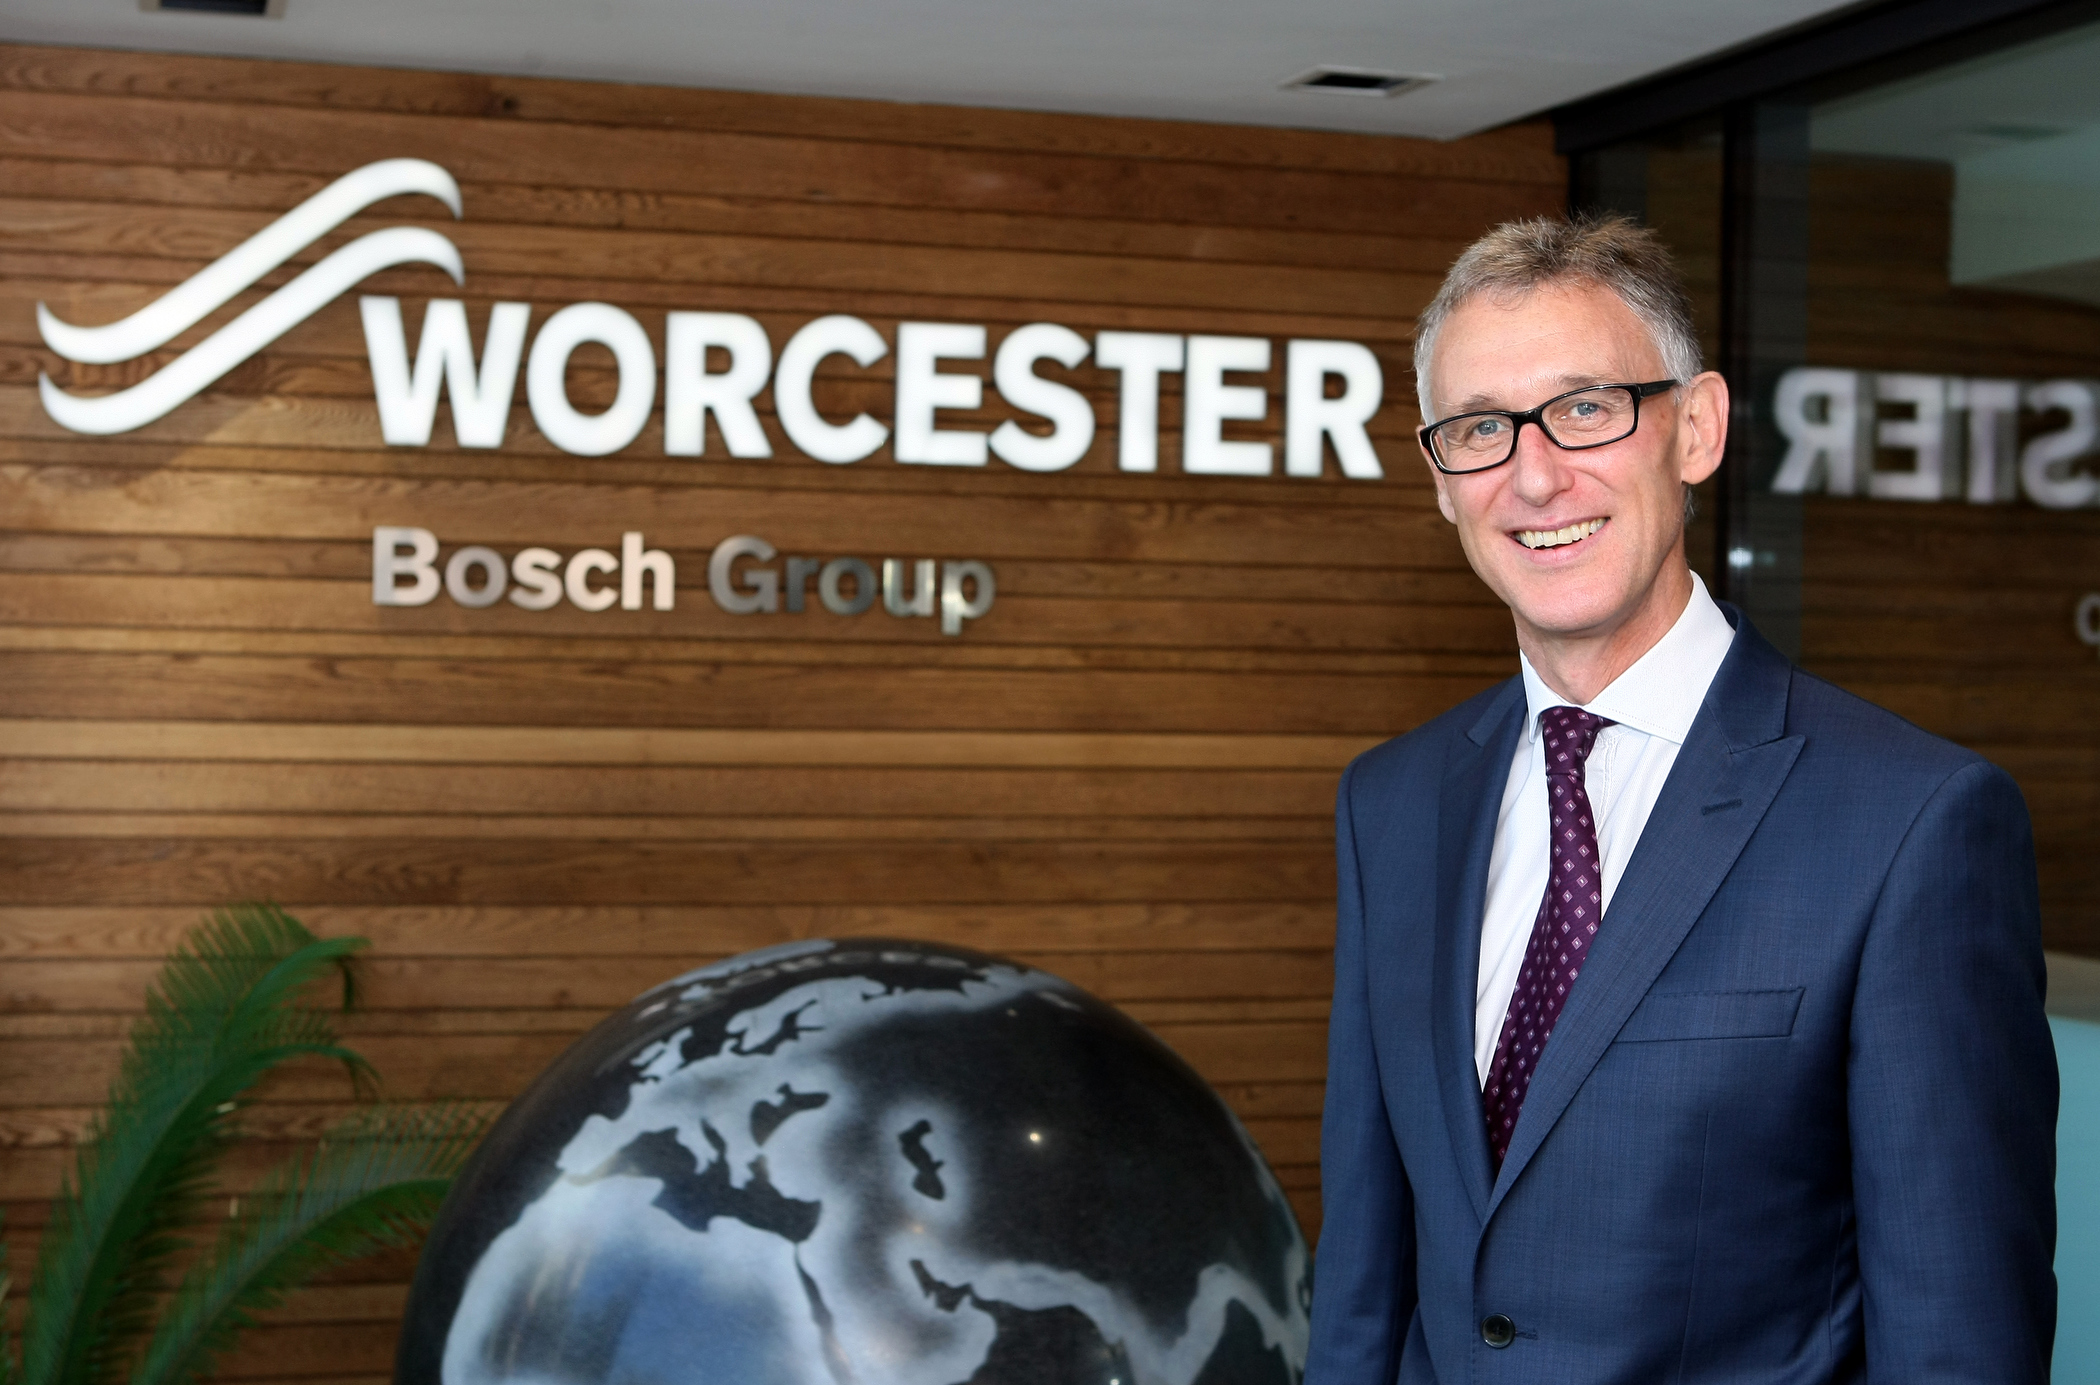 WARNING: Carl Arntzen, CEO of Worcester Bosch, said the ban was a 'shame'